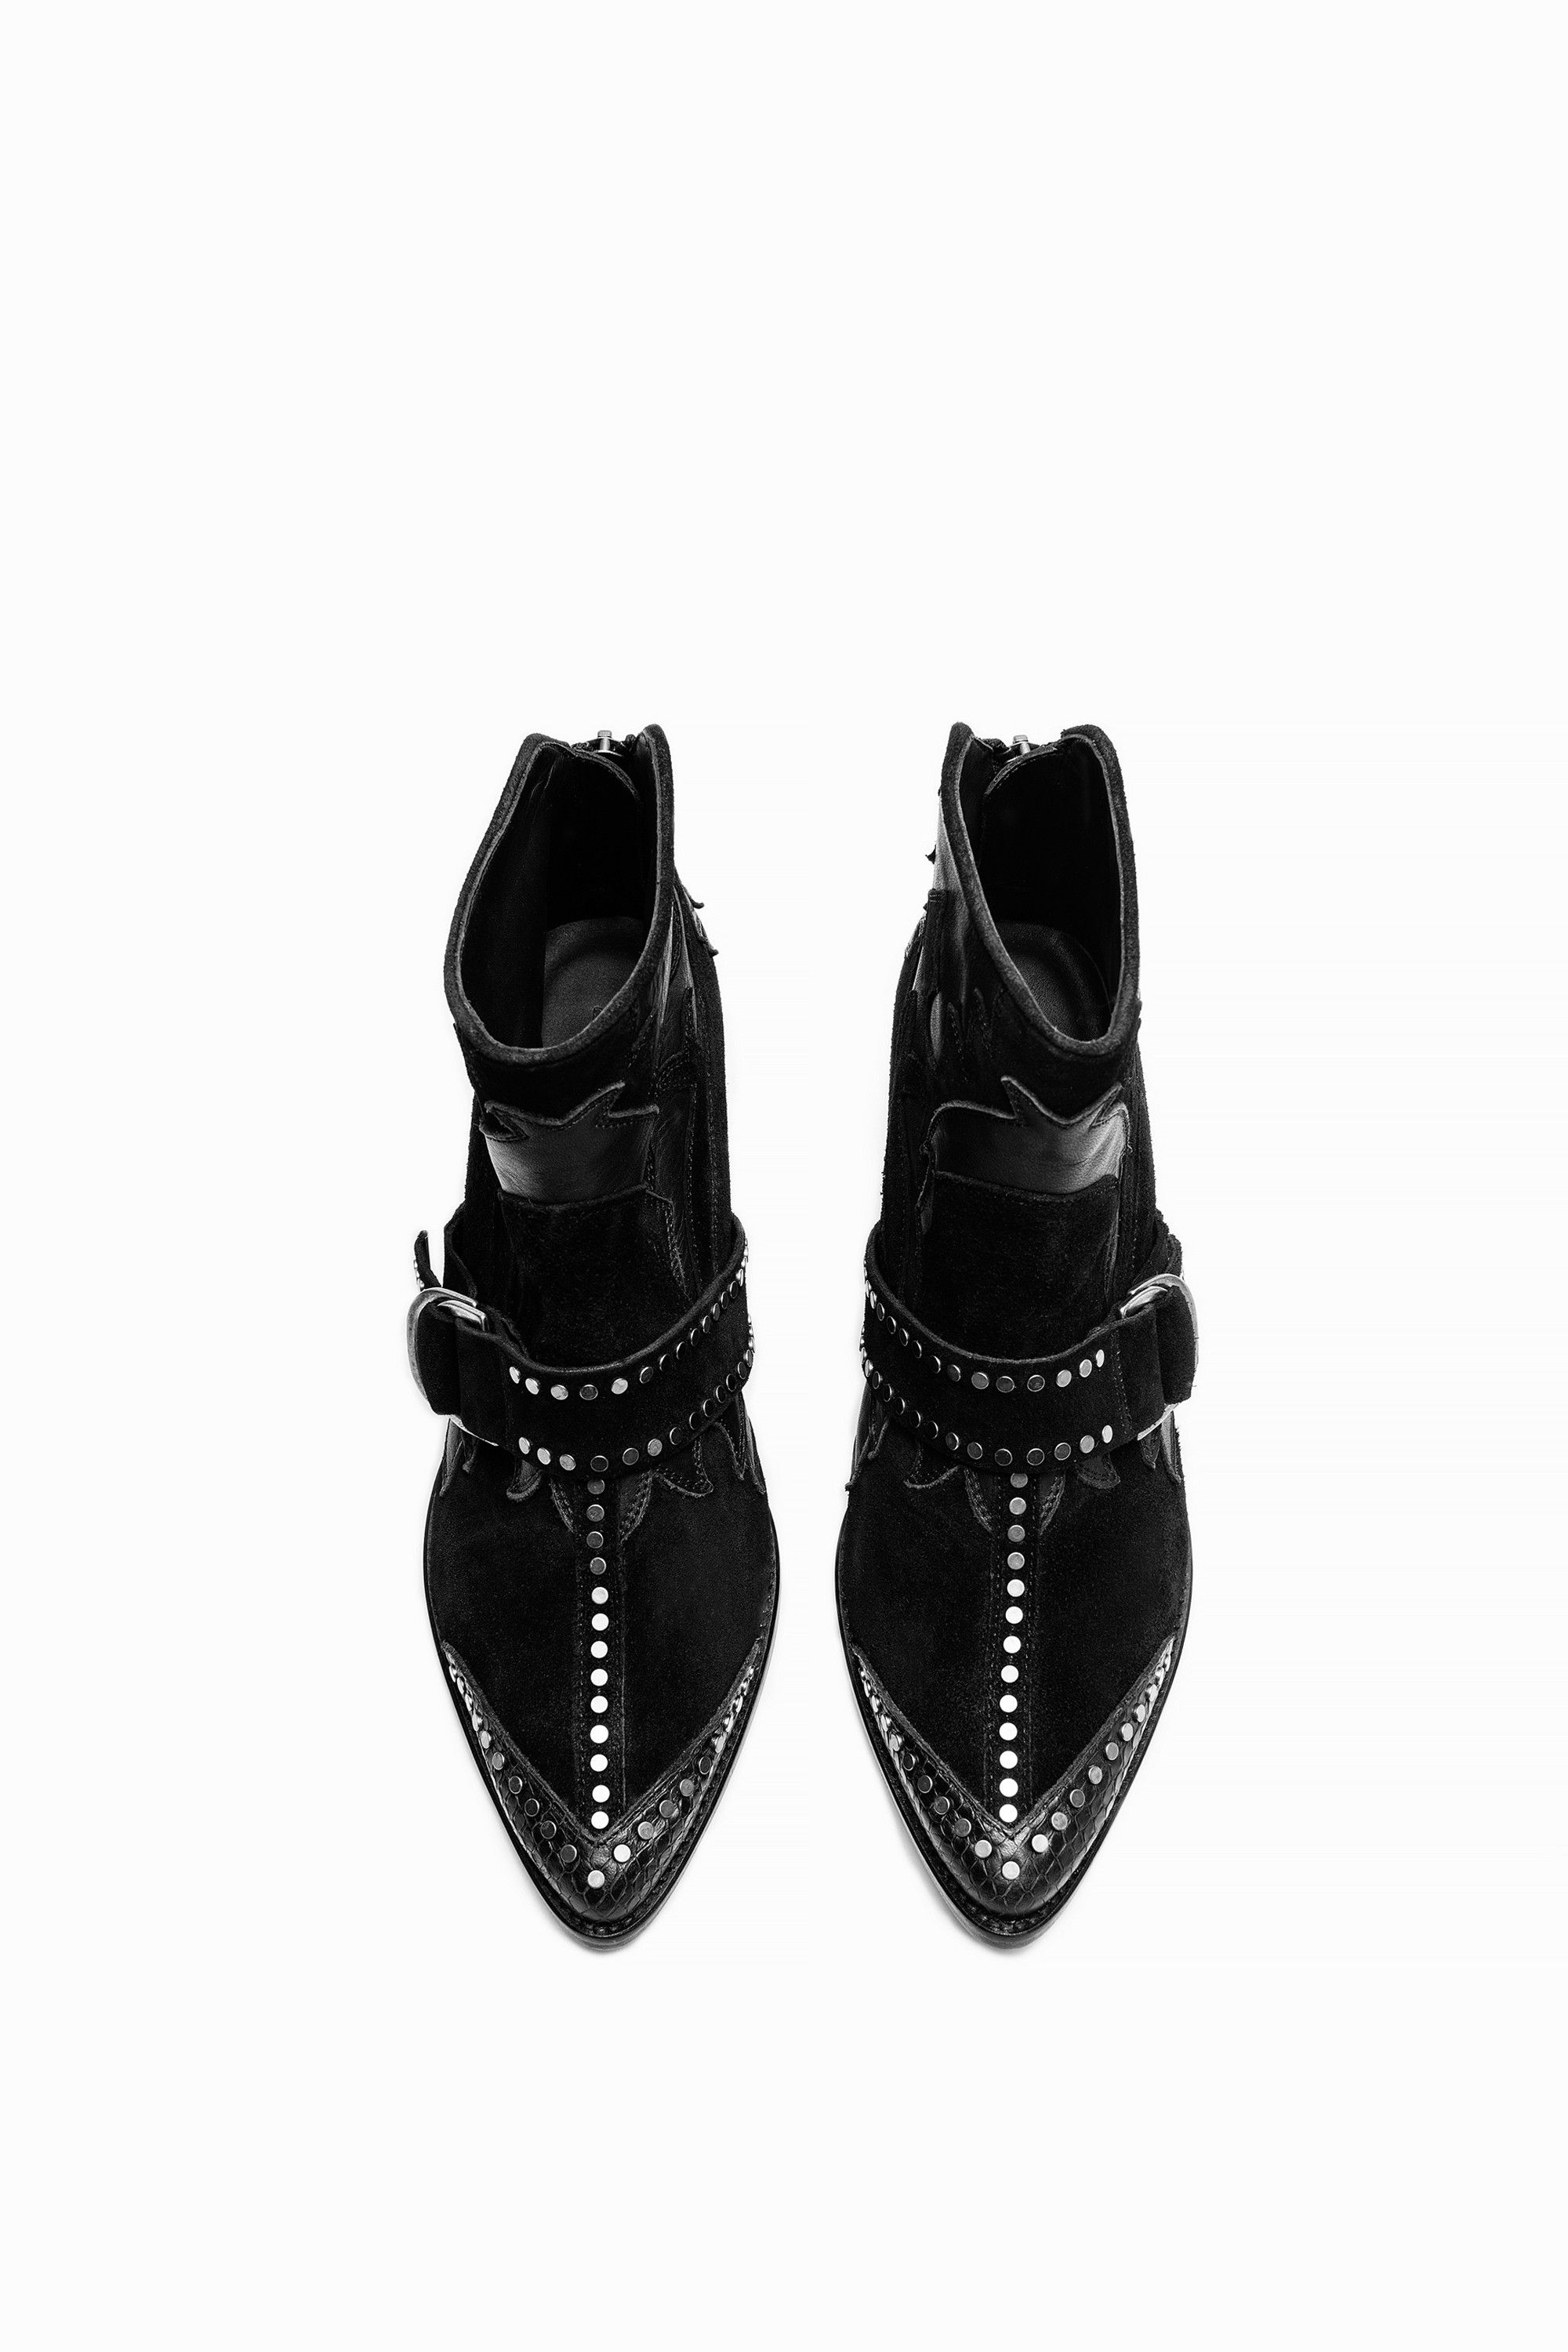 Pinterest Bottines Clothes Black amp; Zadig Voltaire Cara Noir 0rq6Cw0F